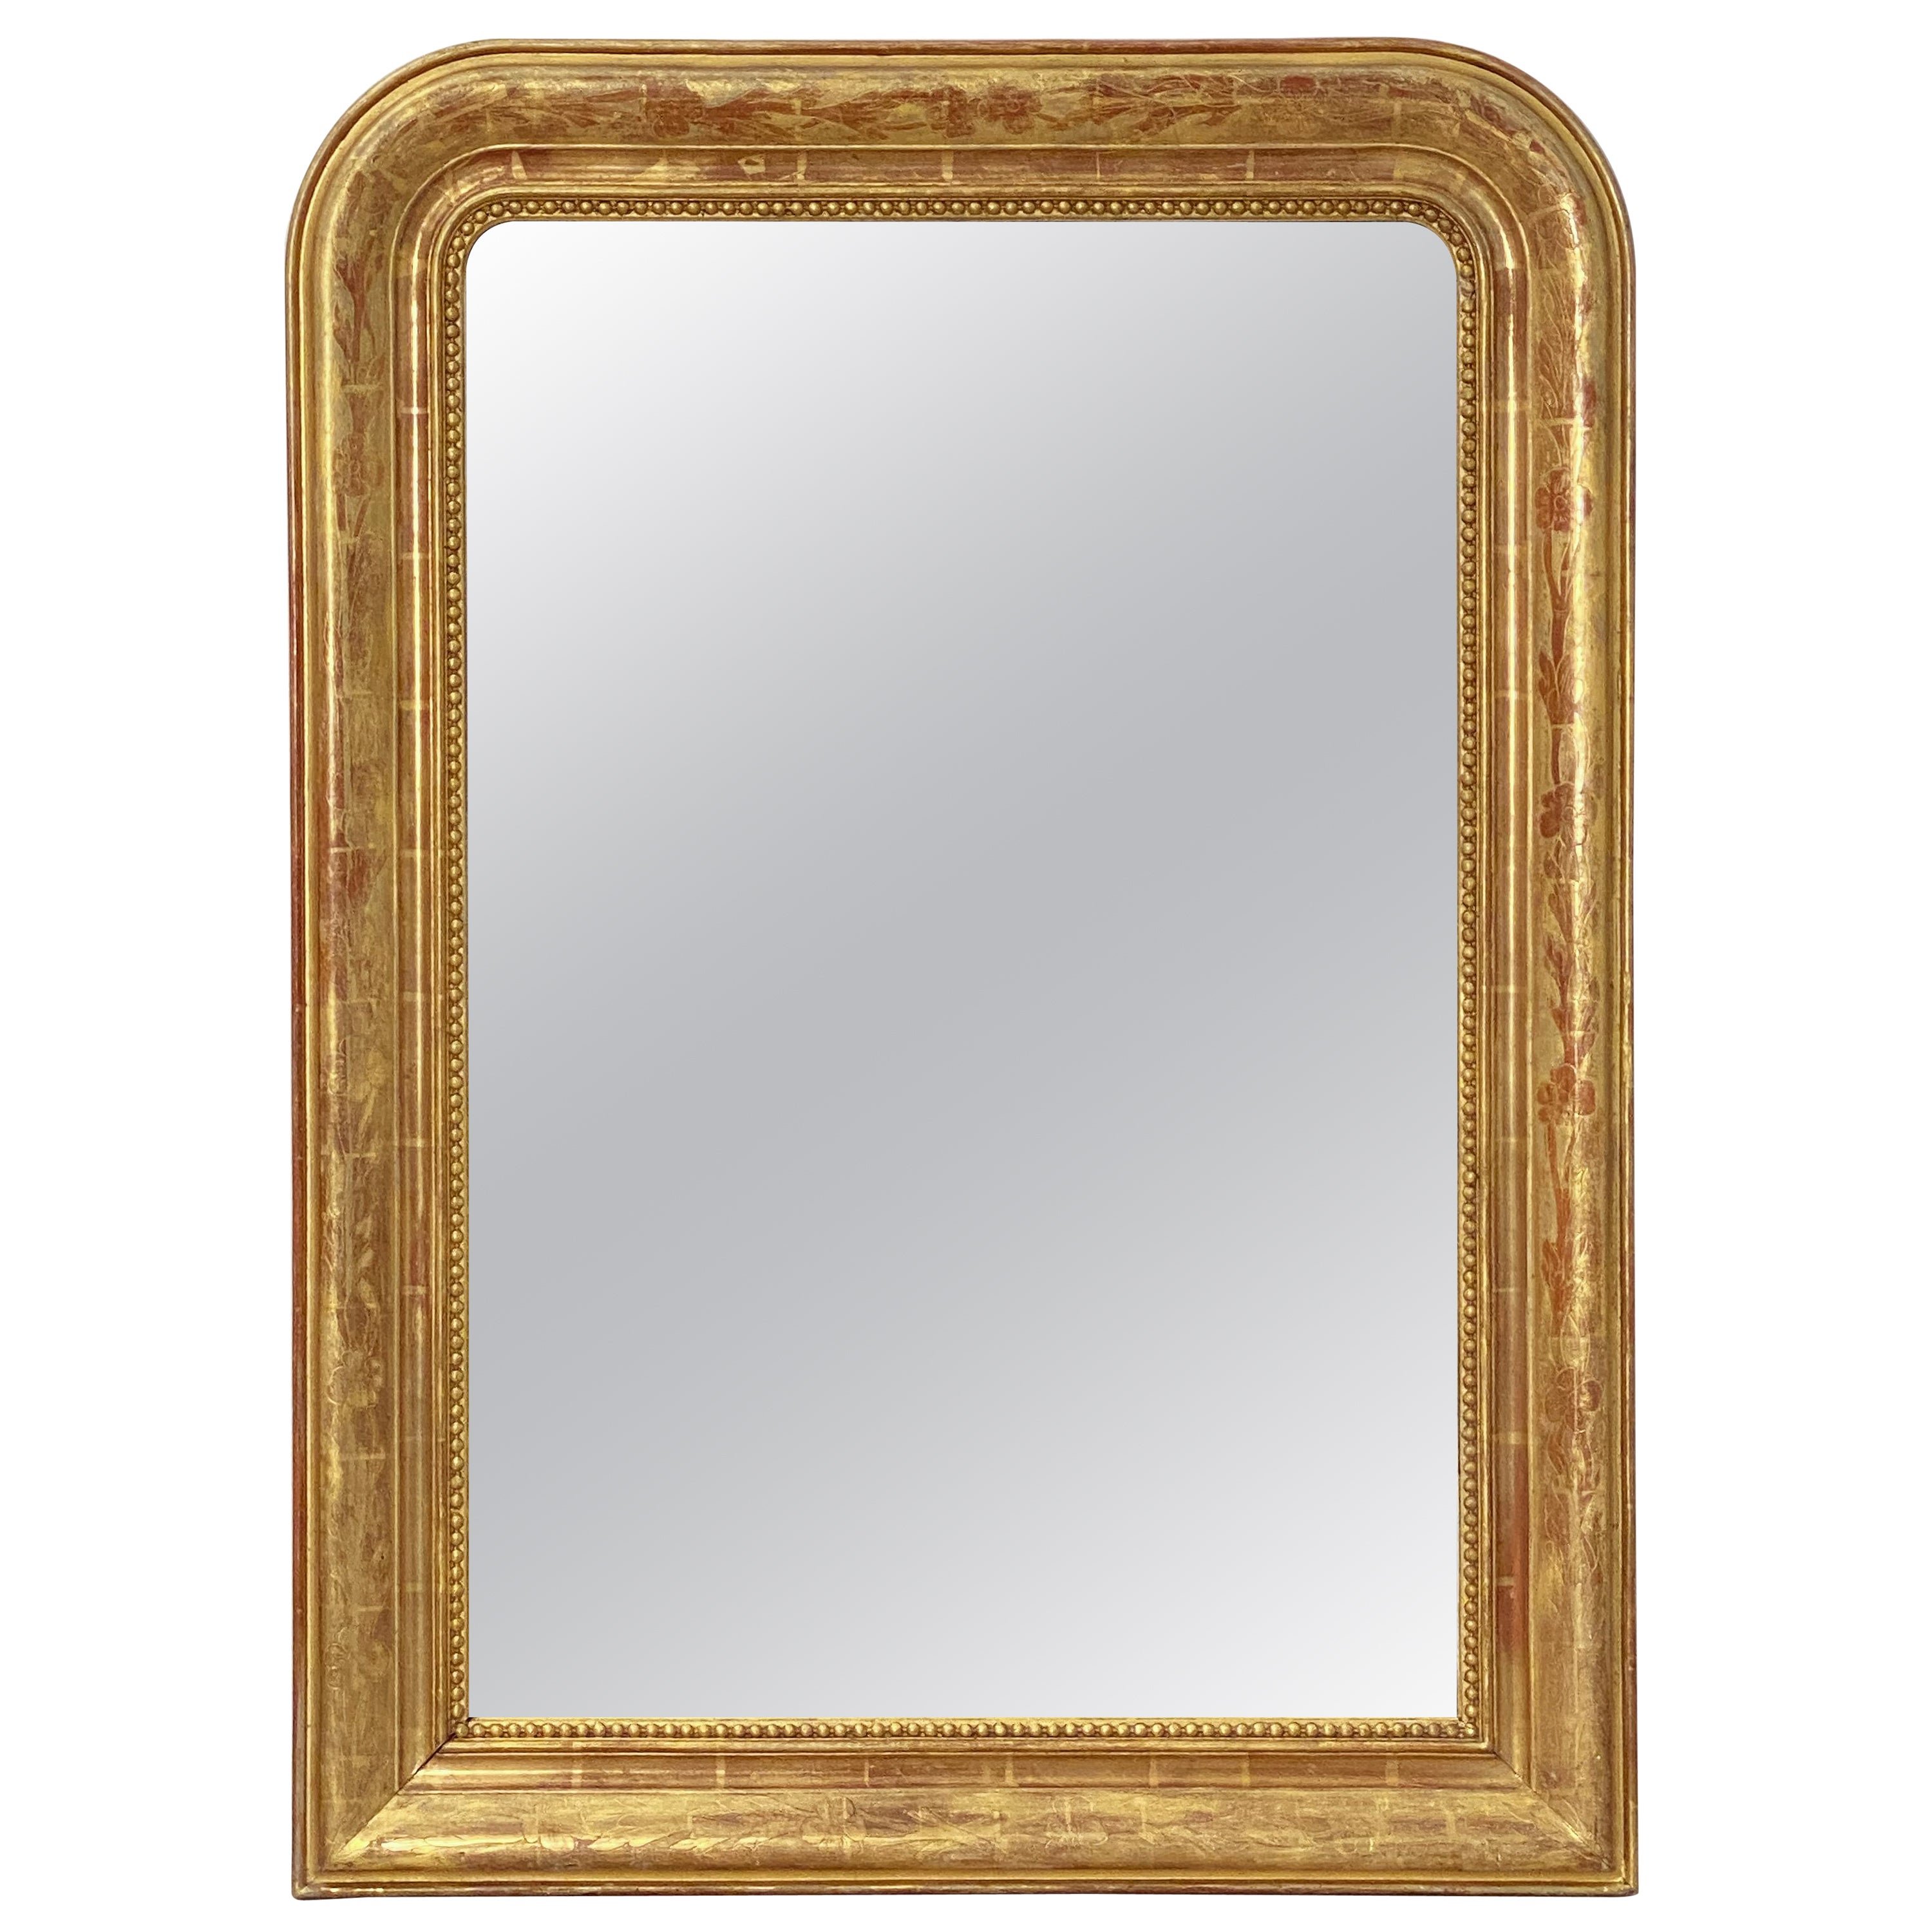 Large Louis Philippe Arch Top Gilt Mirror from France (H 38 3/4 x W 28)